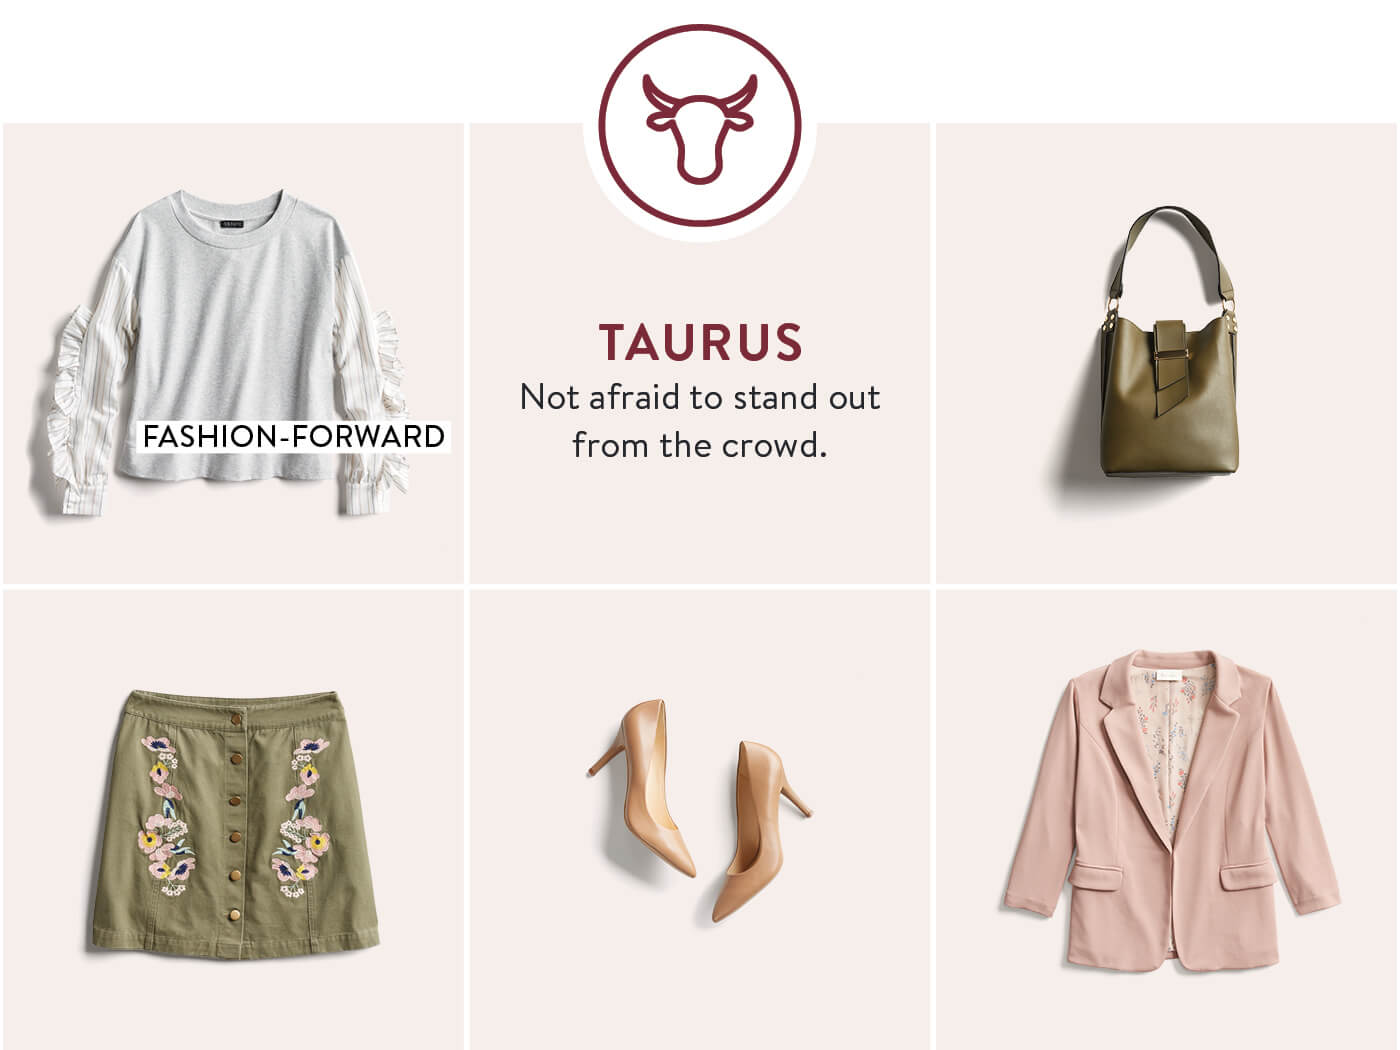 dd9243baac73 What Your Zodiac Sign Says About Your Style